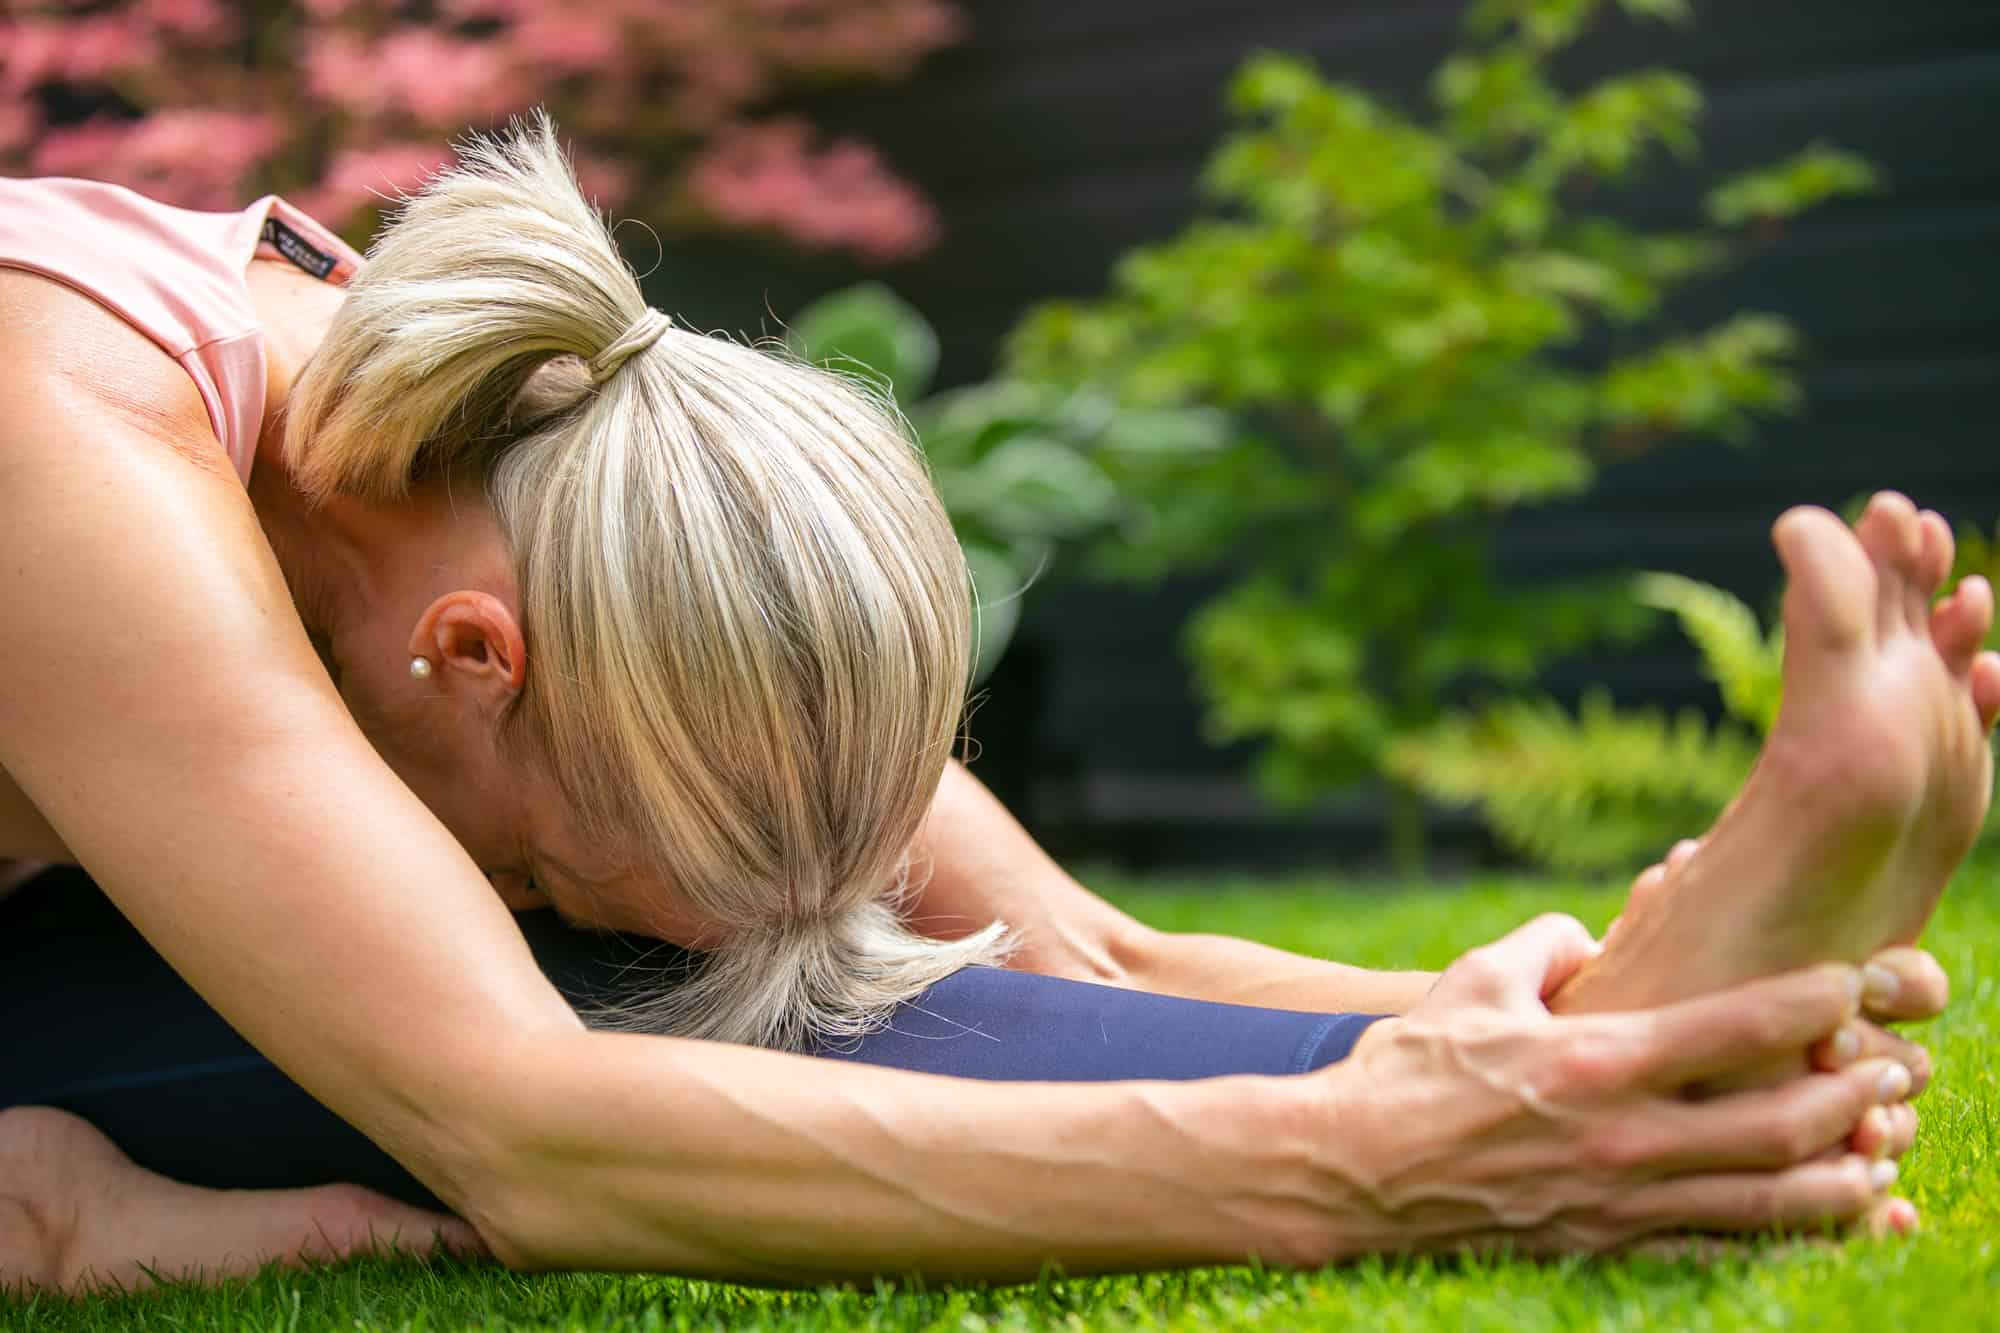 Personal Trainer Carola Becker in a yoga pose